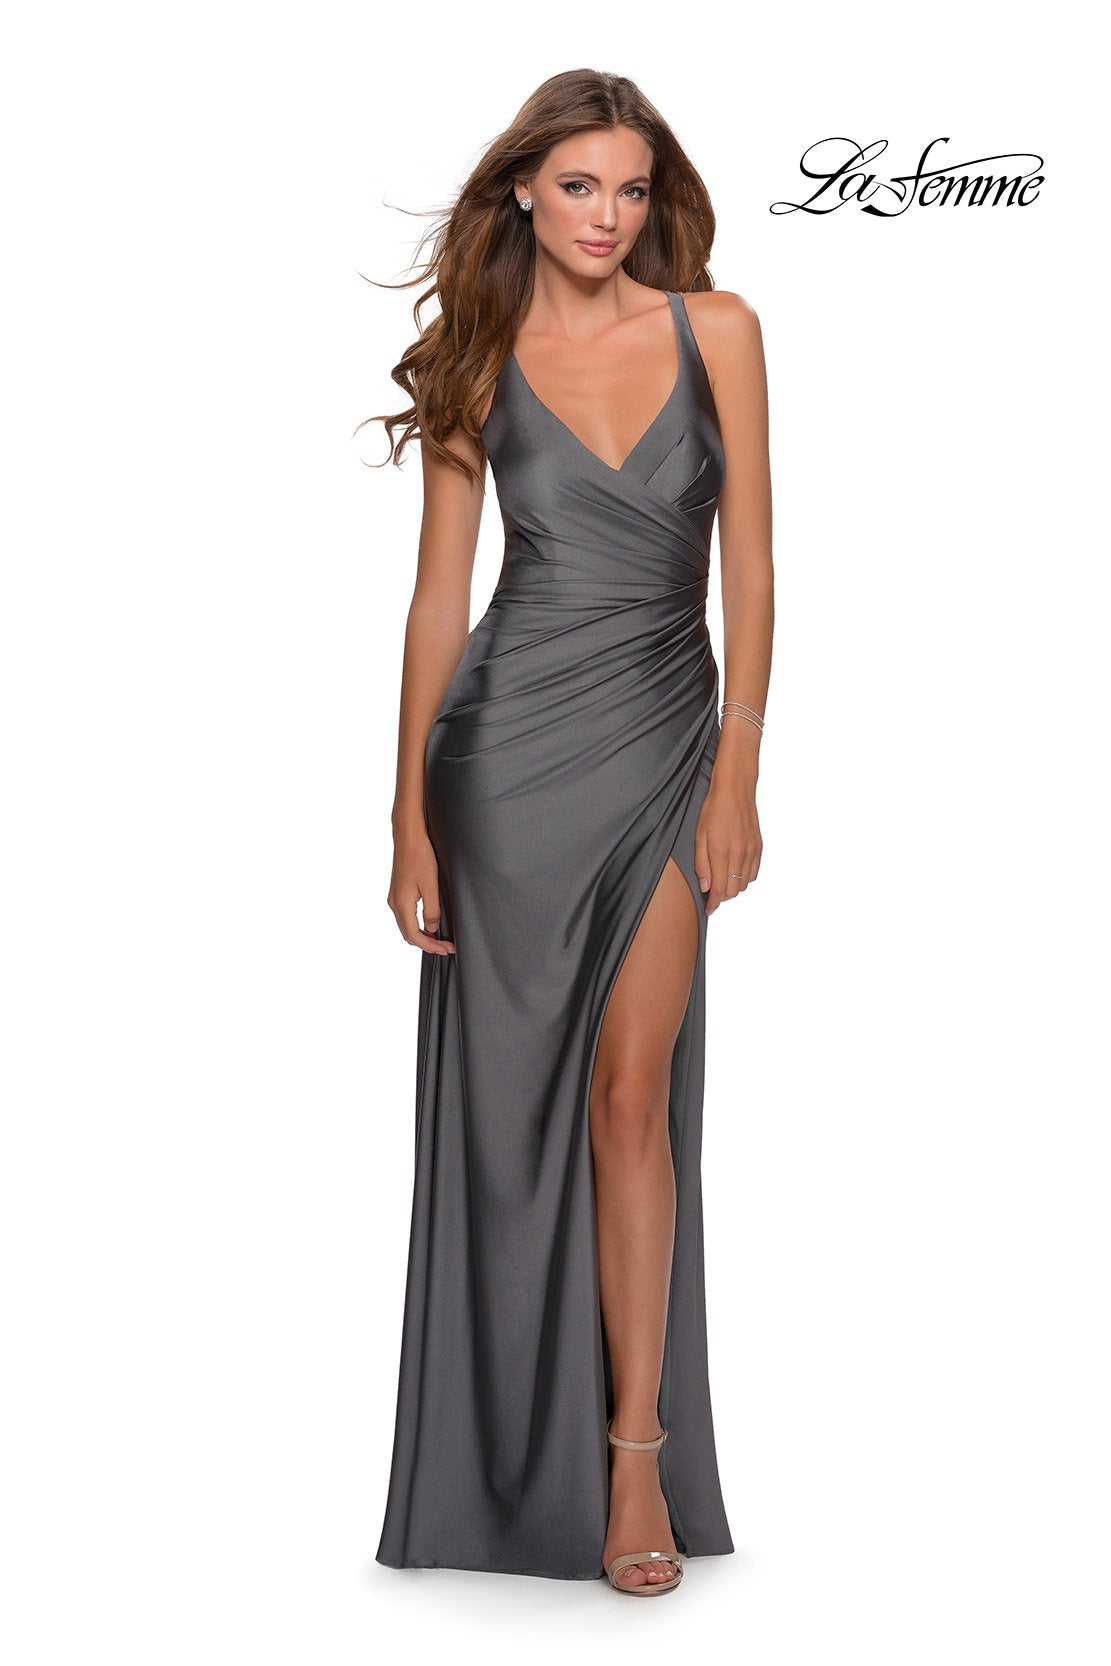 La Femme 28289 prom dress images.  La Femme 28289 is available in these colors: Black, Gunmetal, Red, Royal Blue.